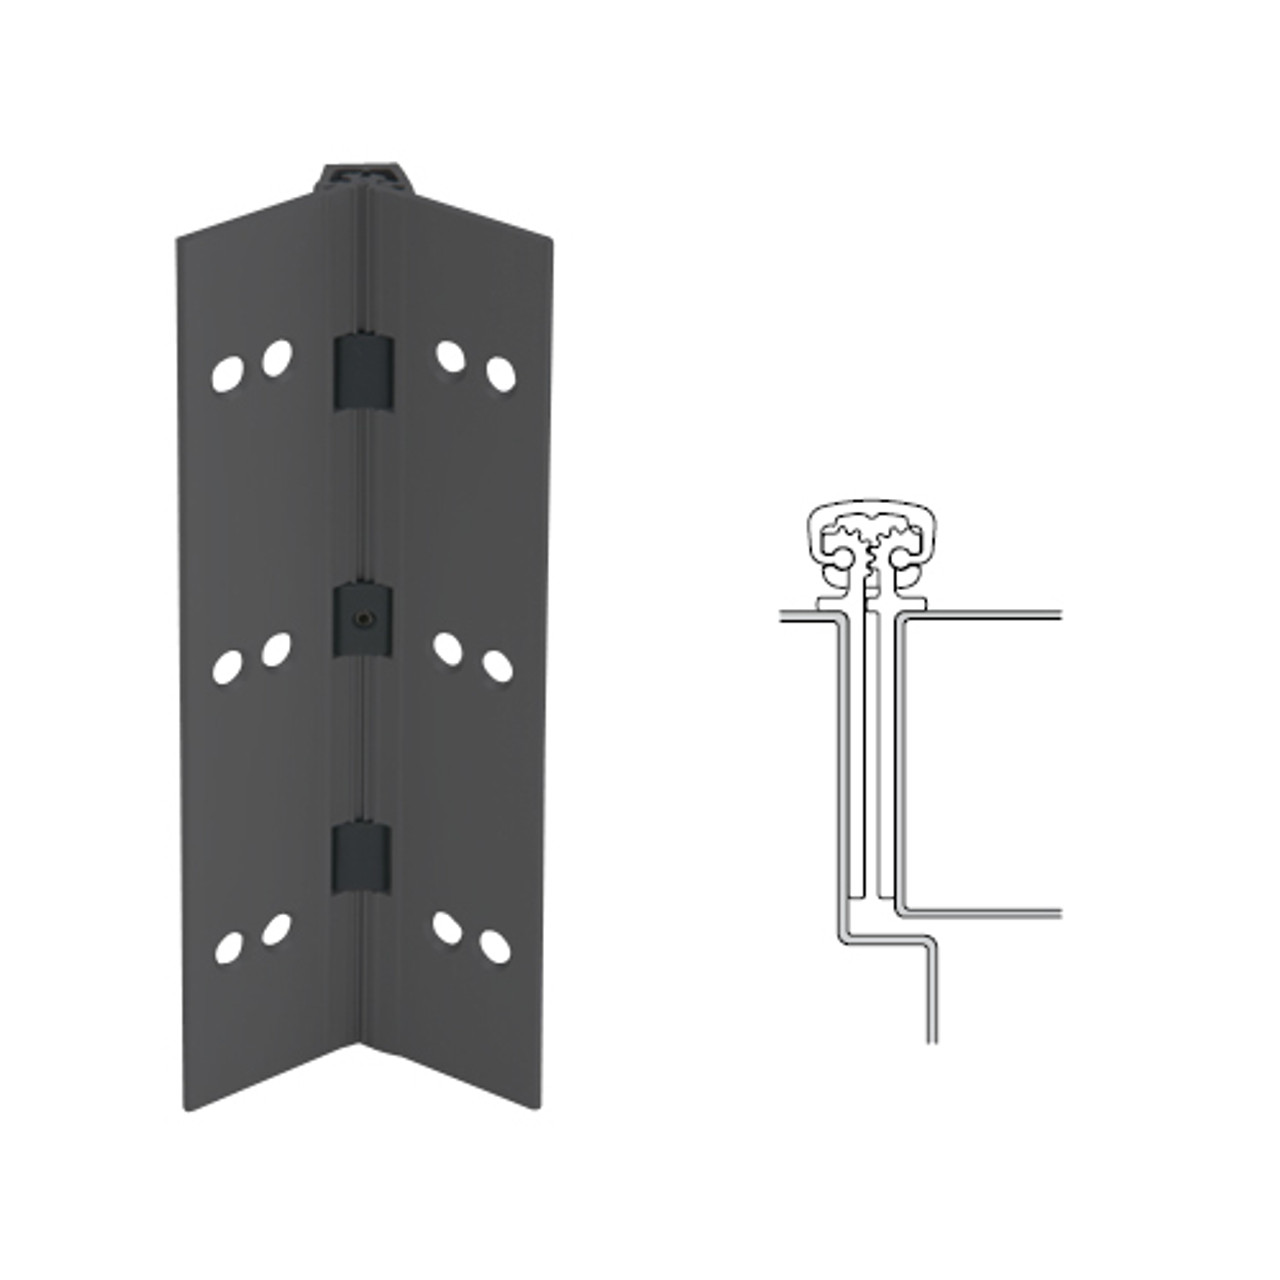 027XY-315AN-120-TF IVES Full Mortise Continuous Geared Hinges with Thread Forming Screws in Anodized Black